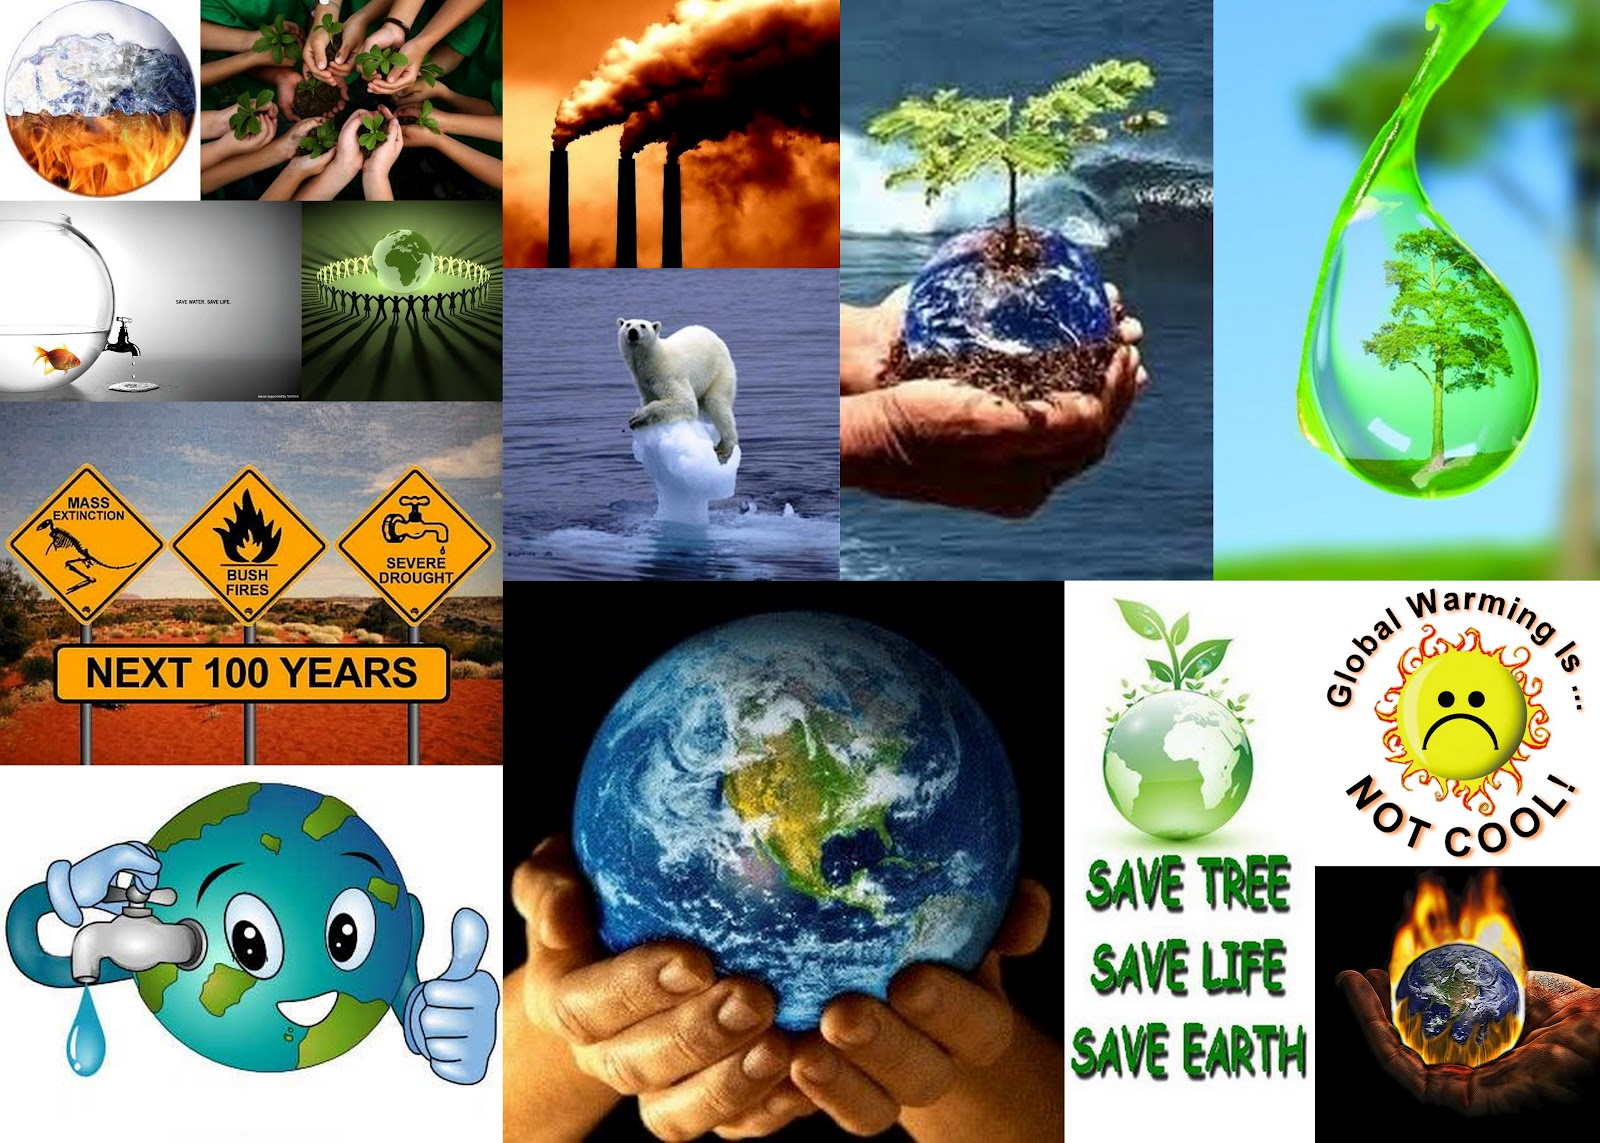 Essay About Saving The Earth